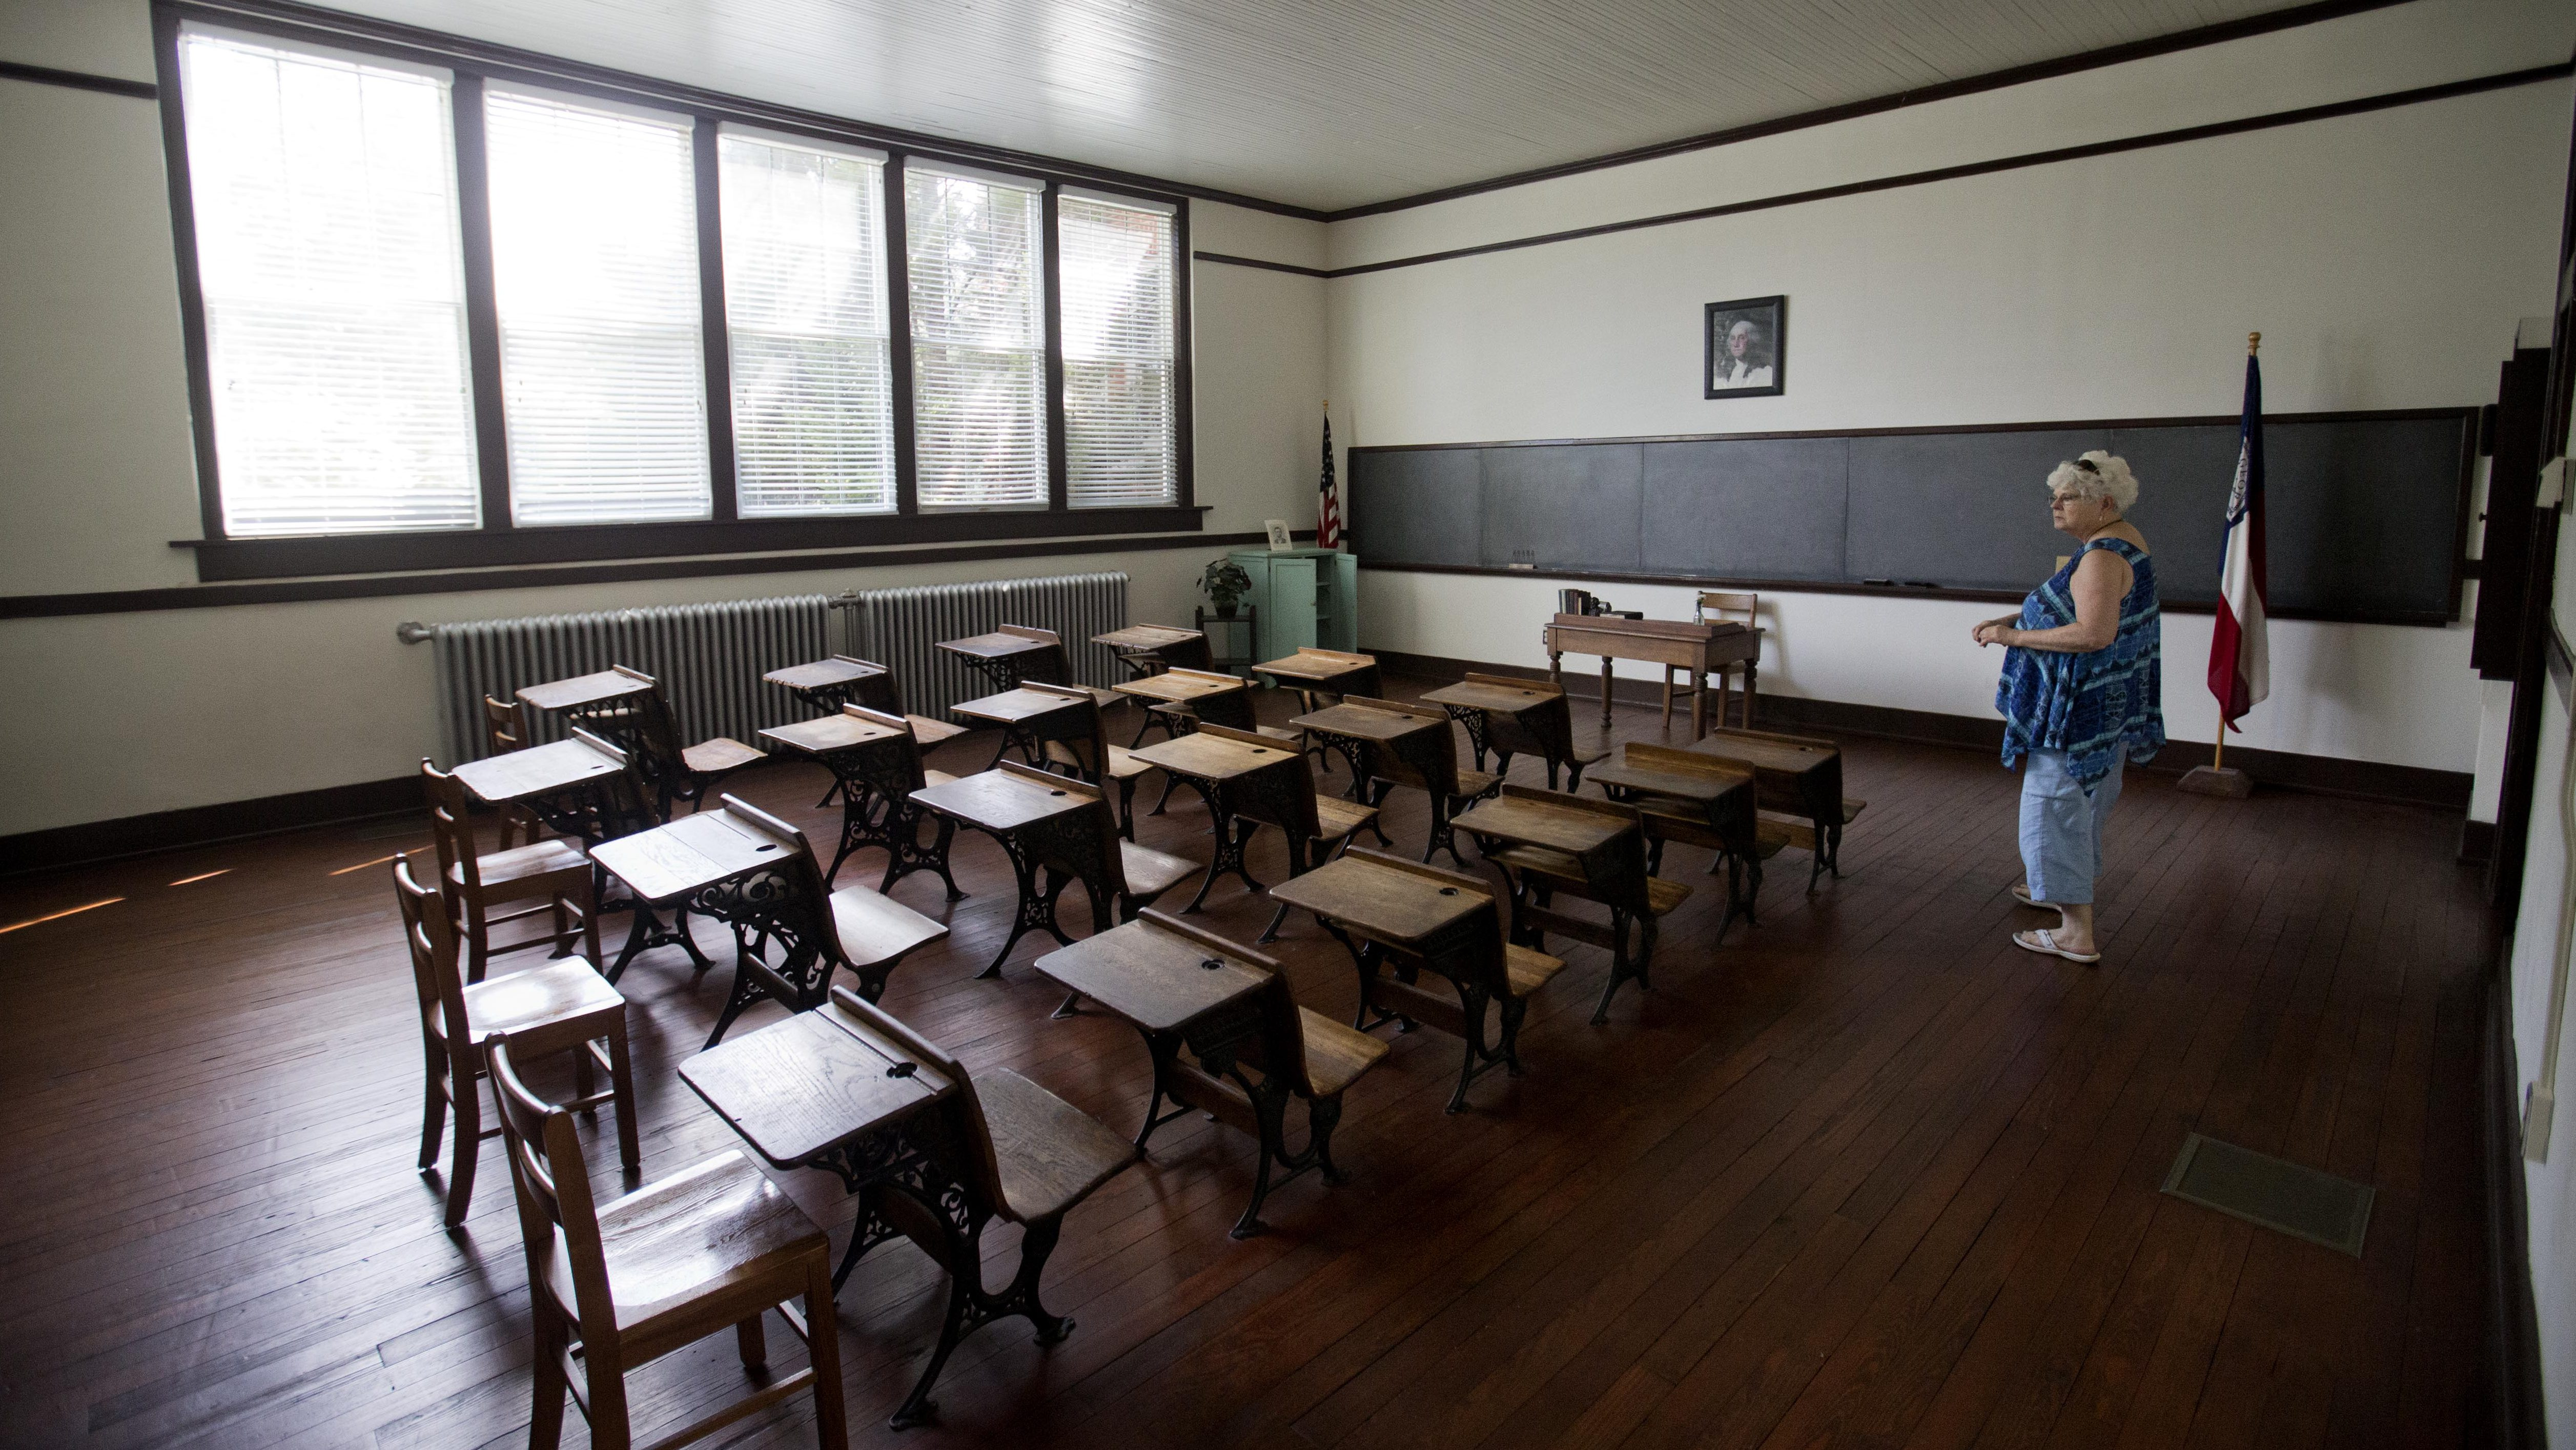 Jane Gurley, of Hendersonville, N.C., walks through a classroom of former President Jimmy Carter from when he attended Plains High School circa 1937, exhibited in what is now the Jimmy Carter National Historic Site in his hometown, Saturday, Aug. 22, 2015, in Plains, Ga. Carter and his hometown have always been intertwined, from the day he announced he would run for president and an old train depot downtown became a local campaign office. He and his wife, Rosalynn, have always kept a home there, but the 90-year-old Carter intends to spend a lot more time in the tiny town as he's treated for cancer that has spread to his brain. (AP Photo/David Goldman)